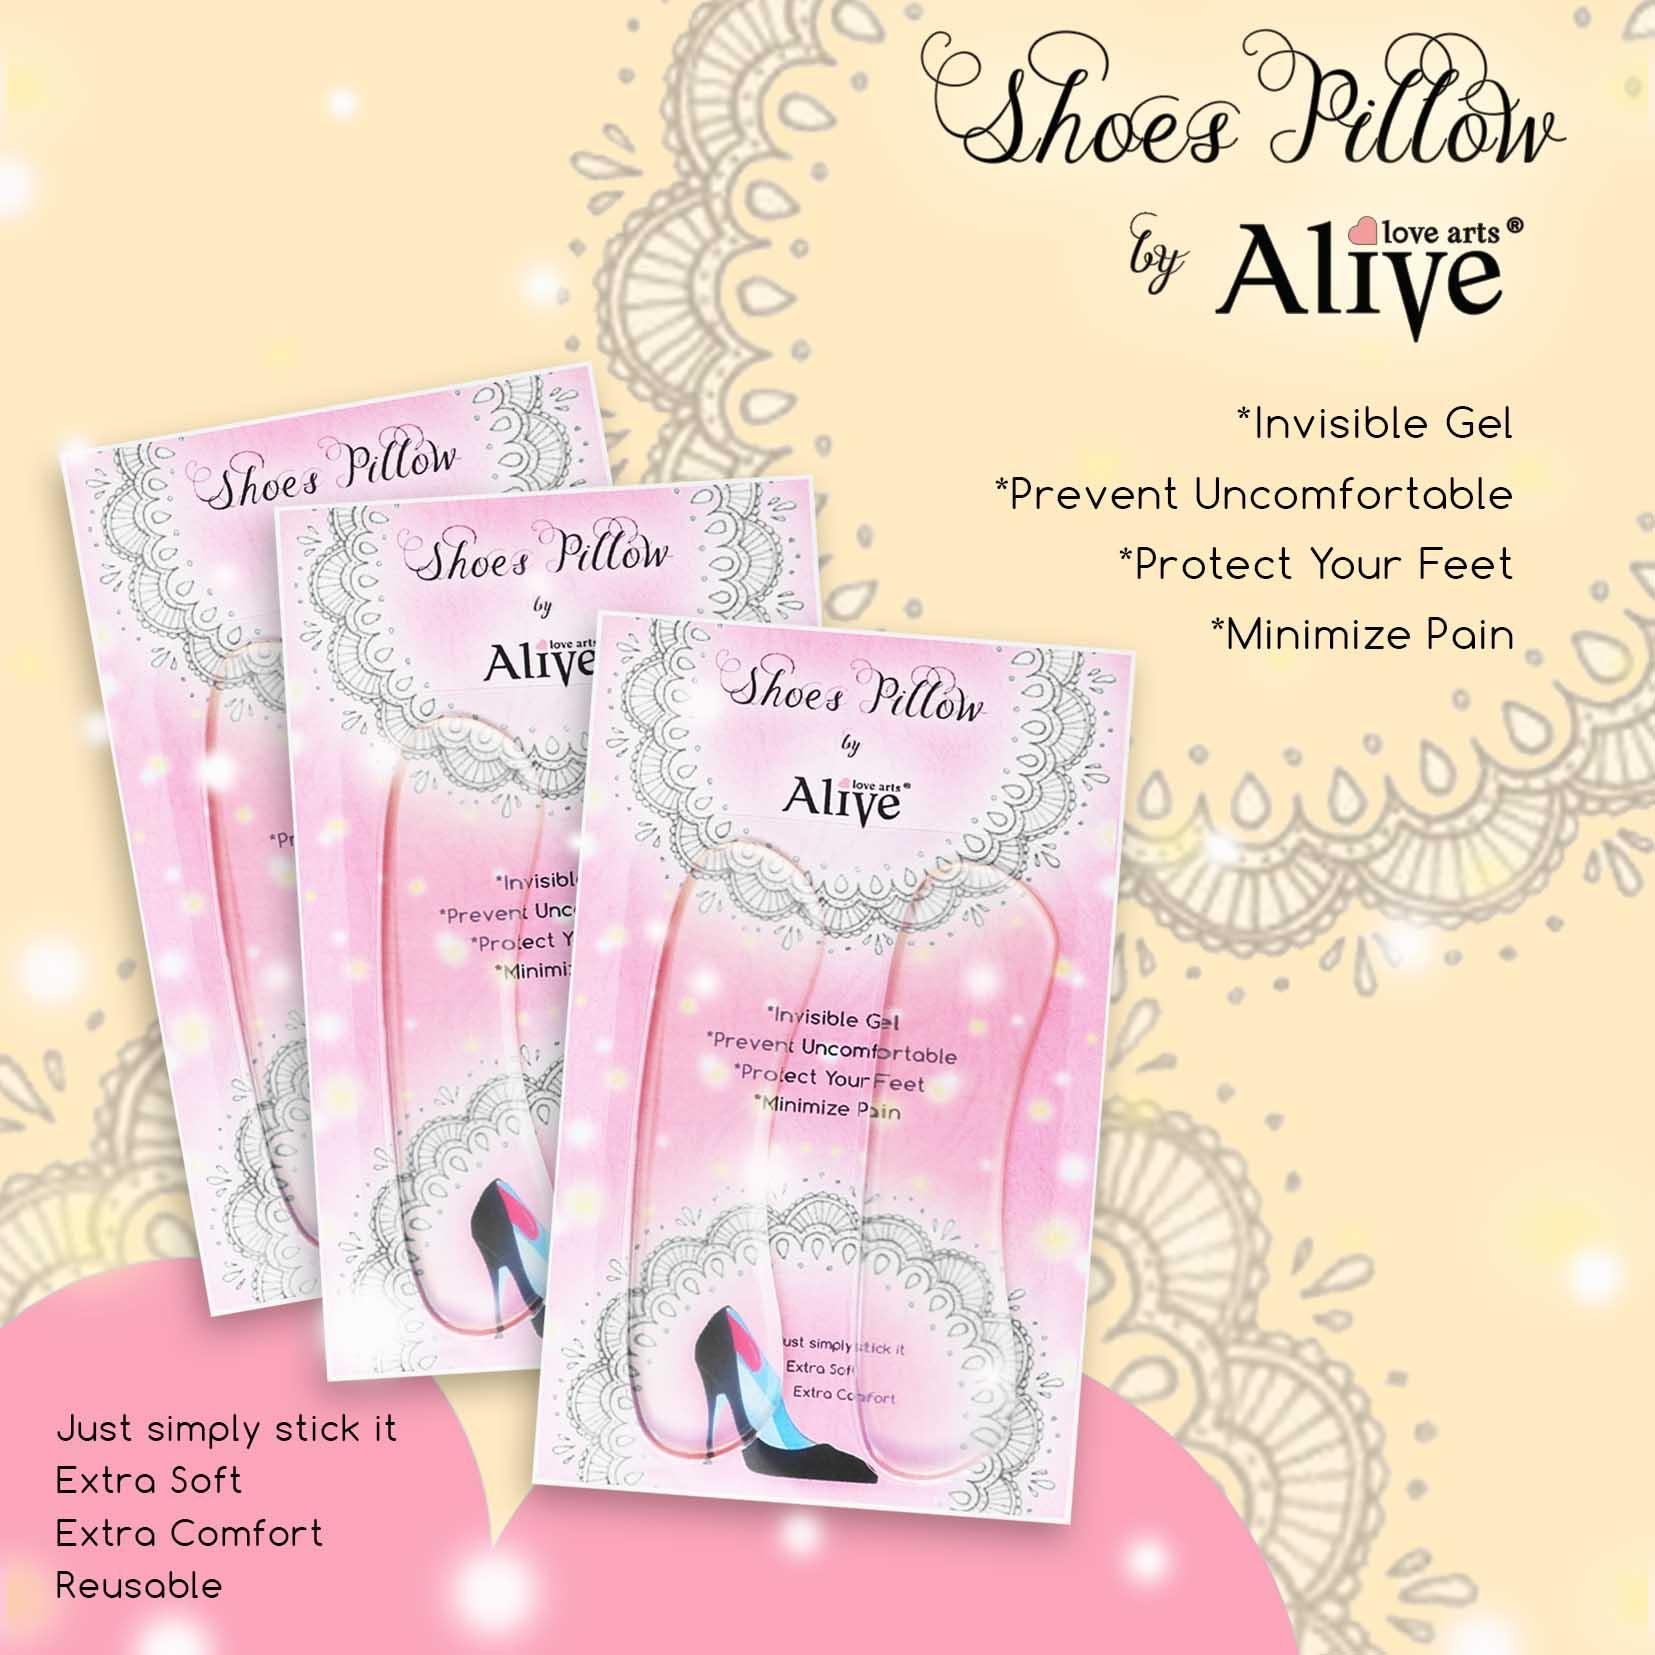 Aliveloveart Premium Shoes Pillow 1pcs